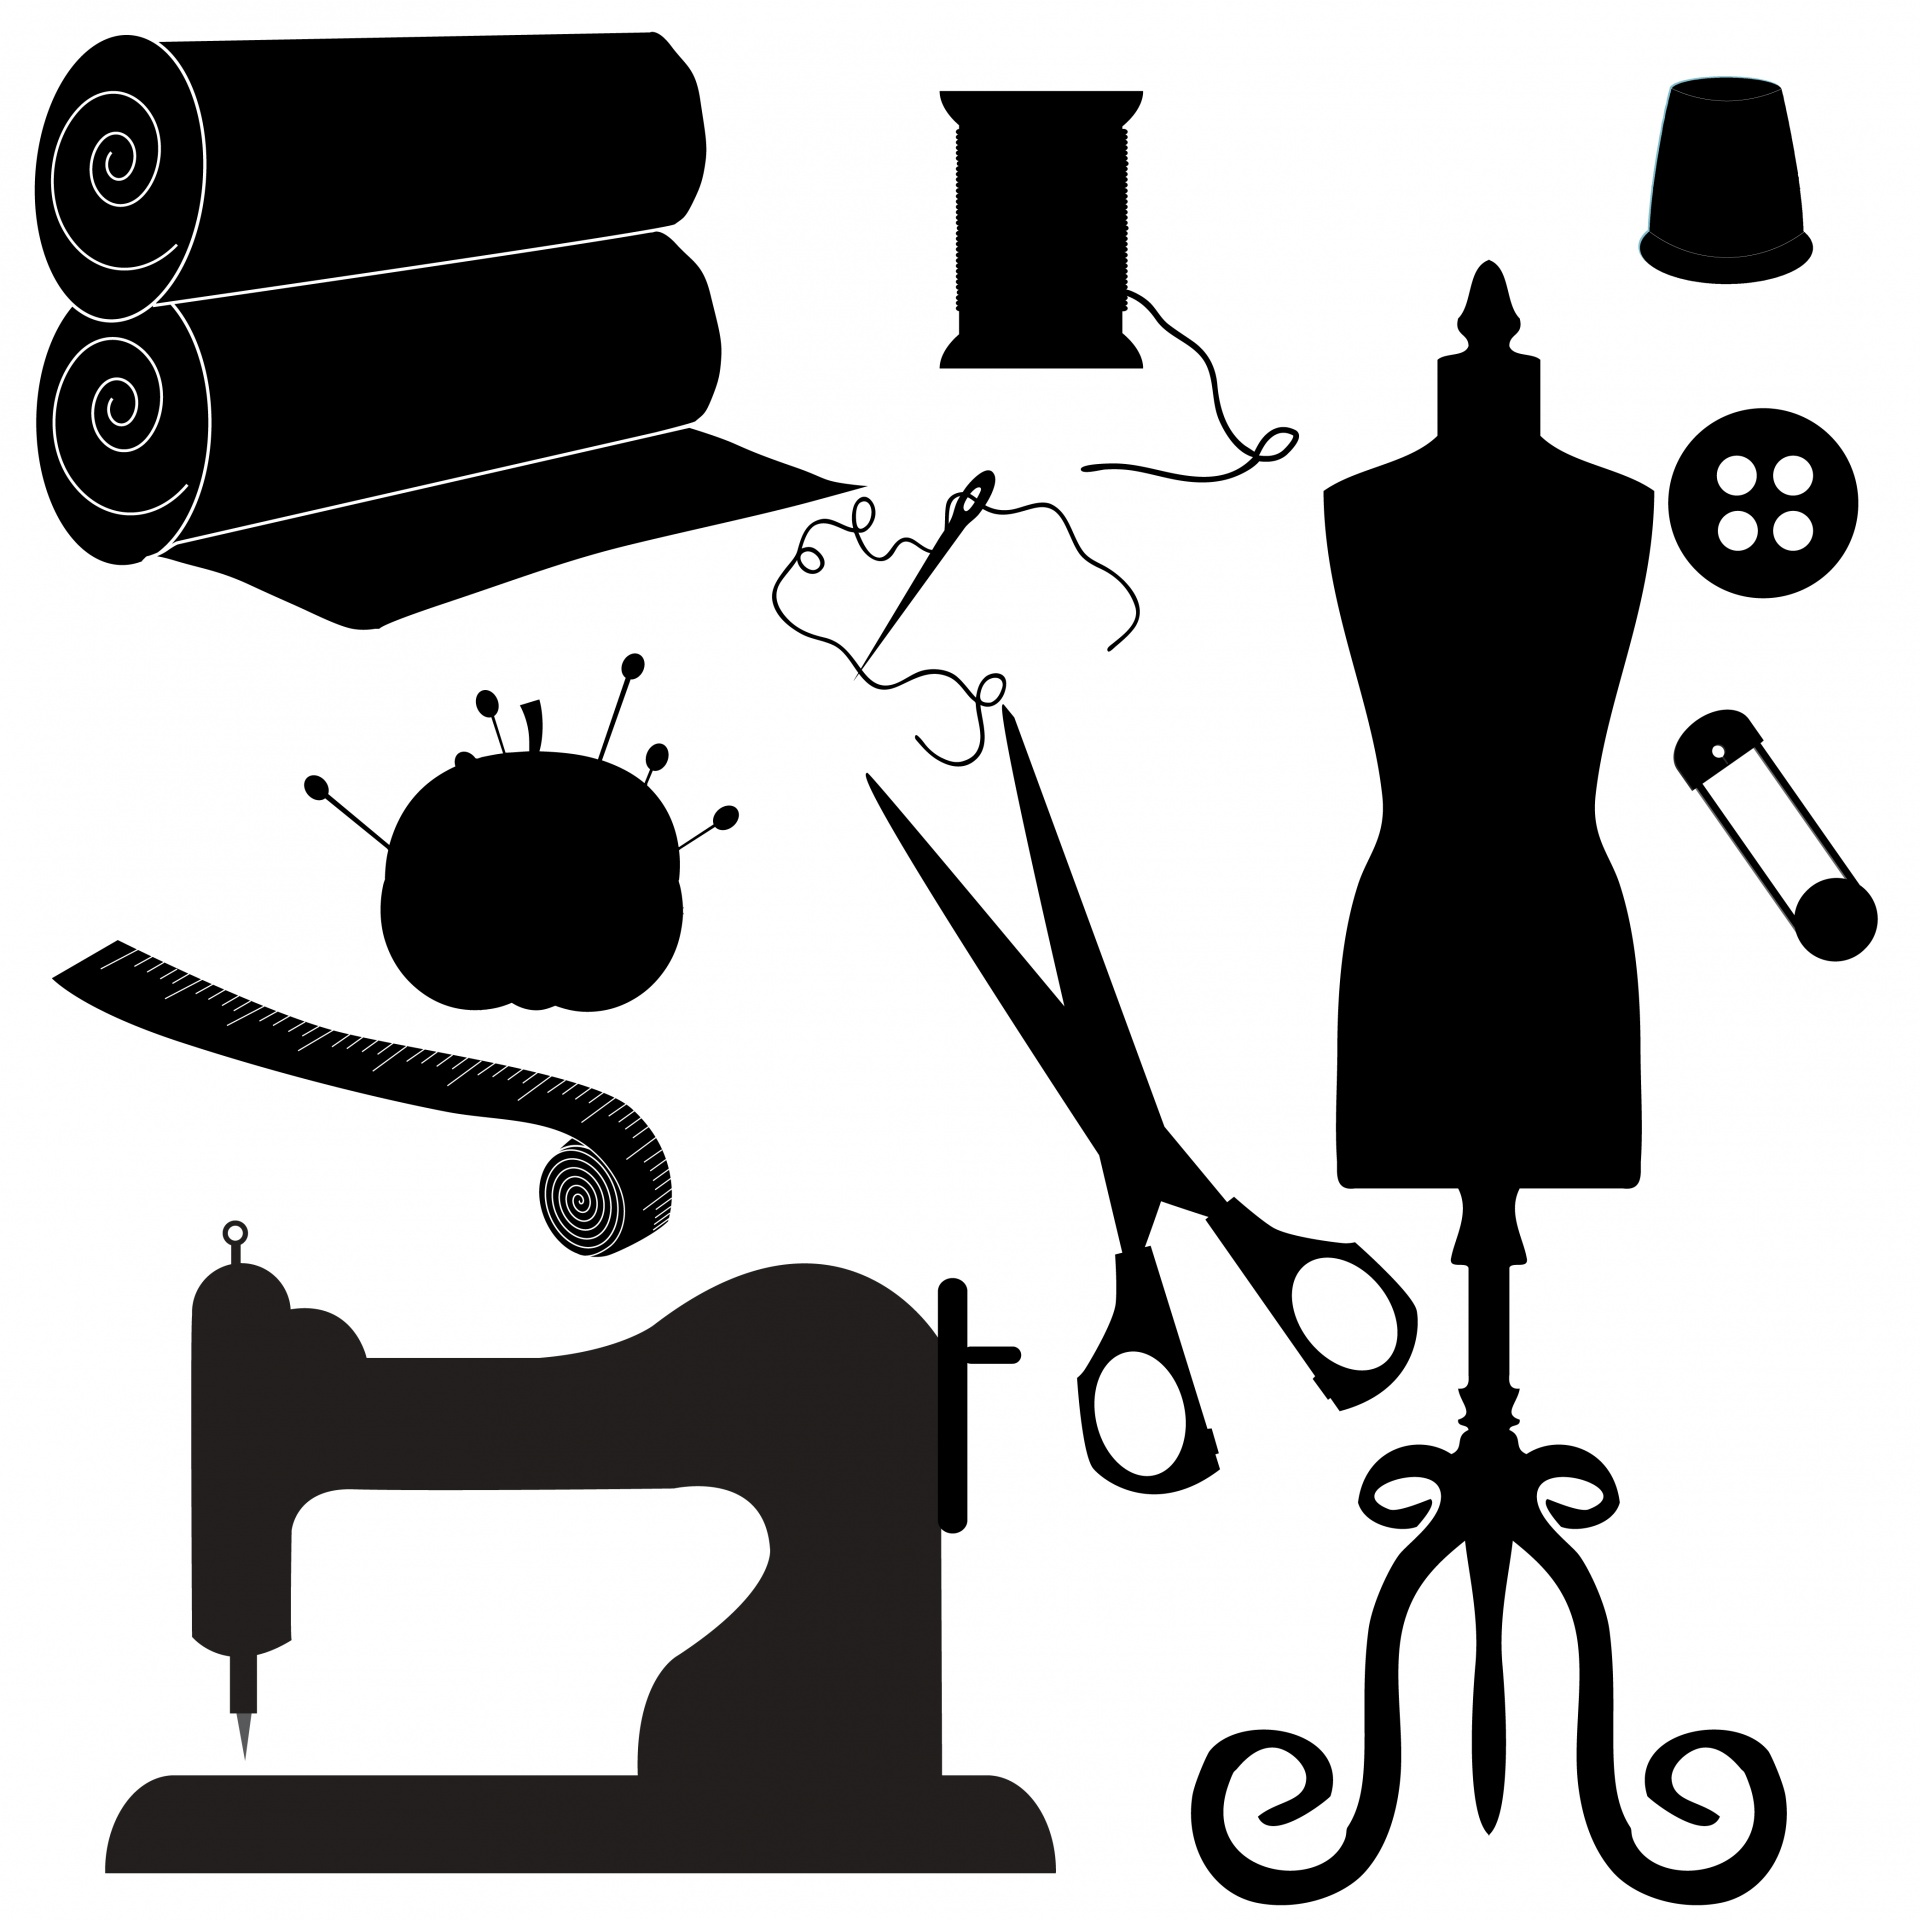 Sewing Symbols Clipart Silhouette Free Stock Photo.